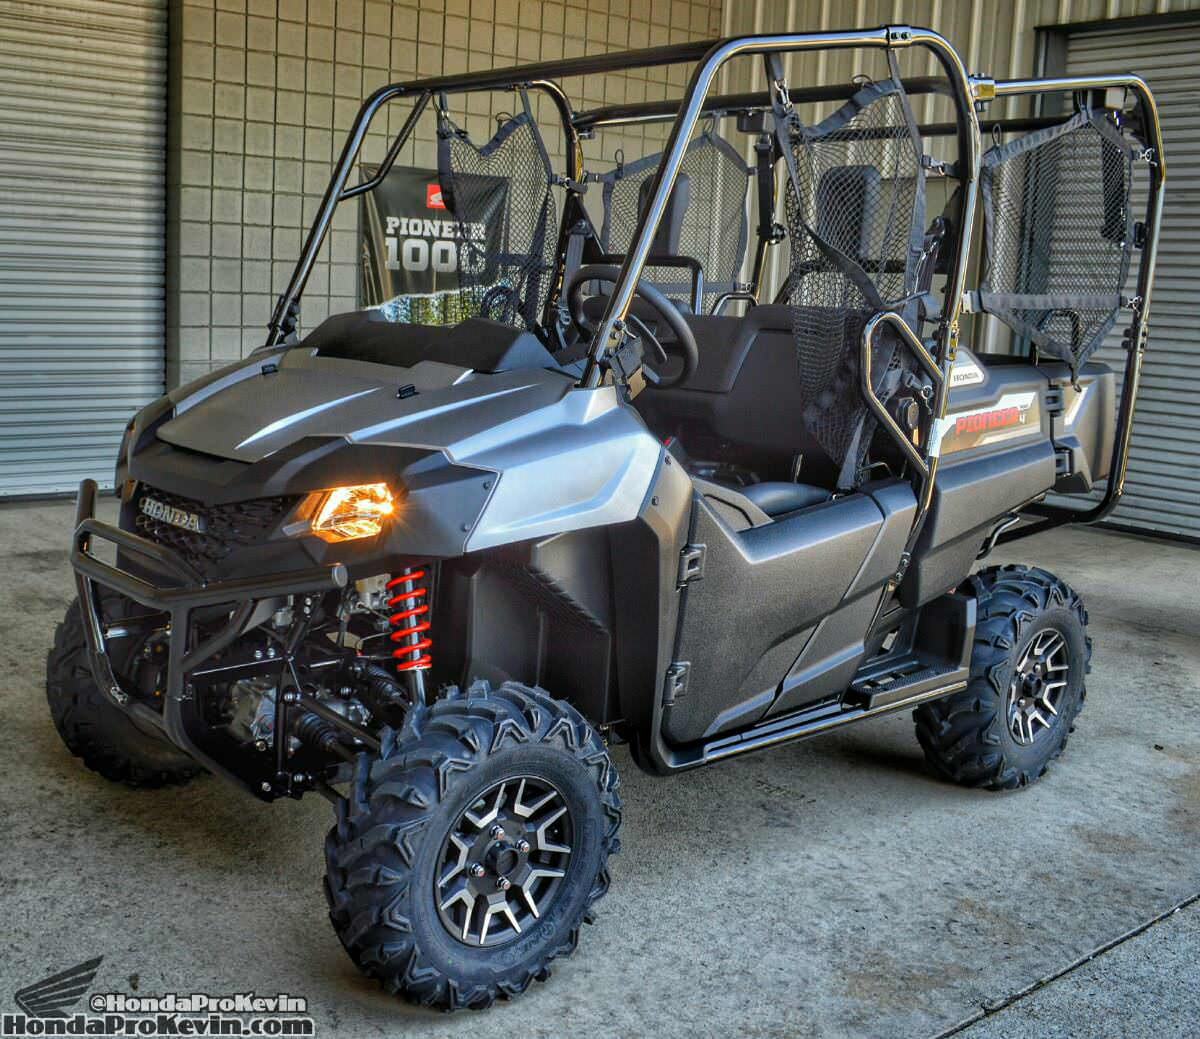 Honda Vermont 700 Specifications Ehow: Index Of /pictures/2017-pioneer-700-4-hpk